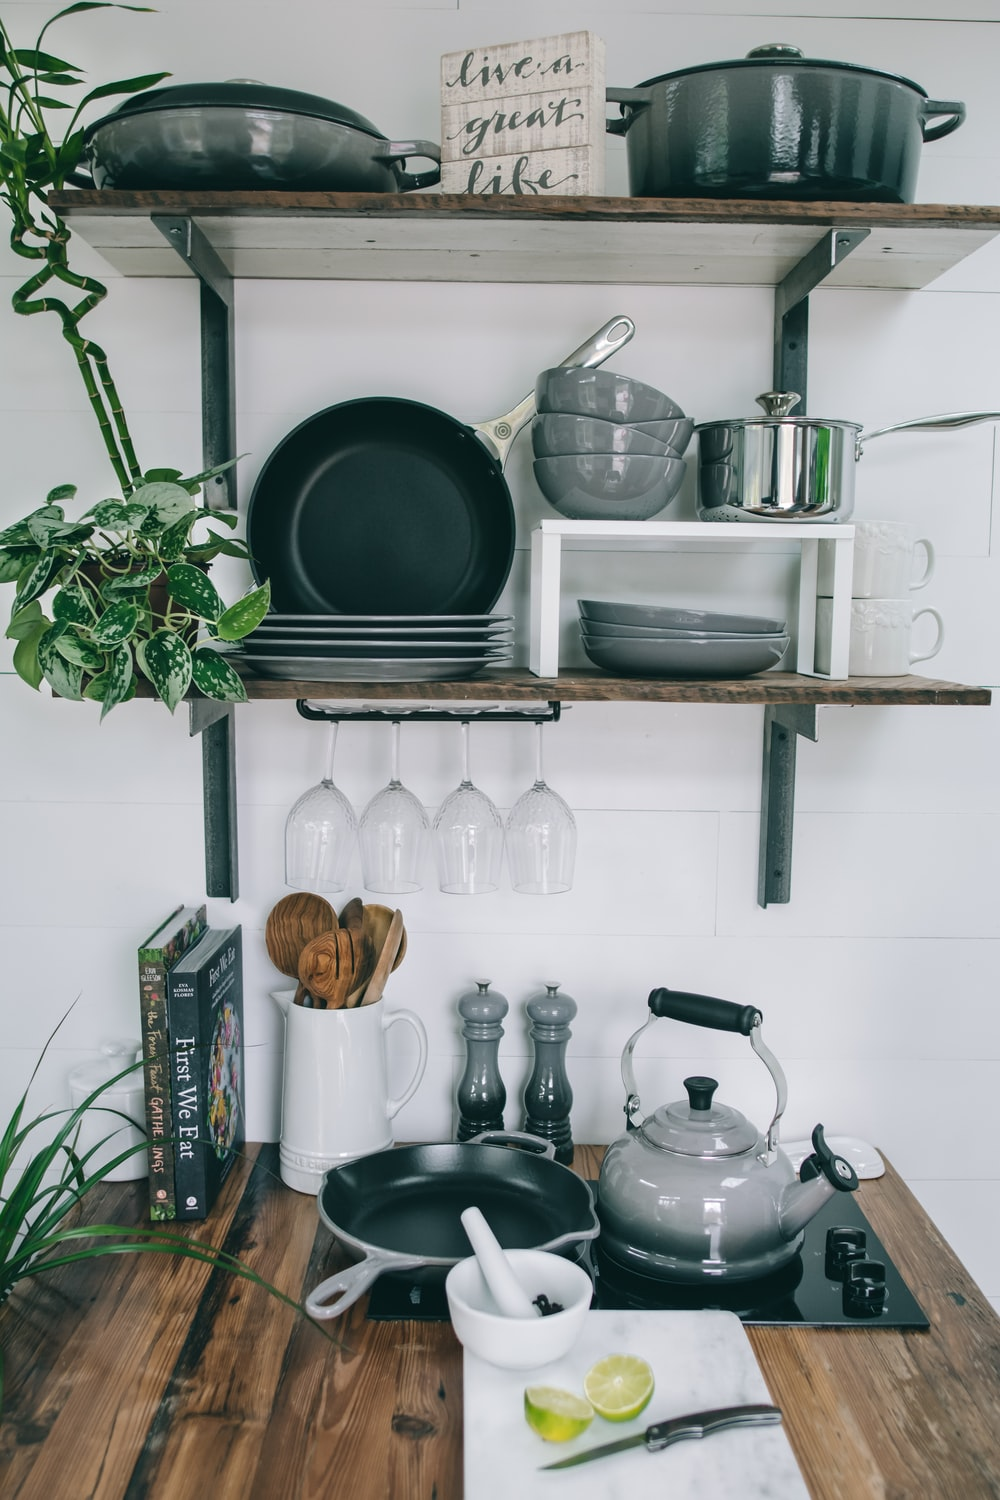 pans and plates on rack